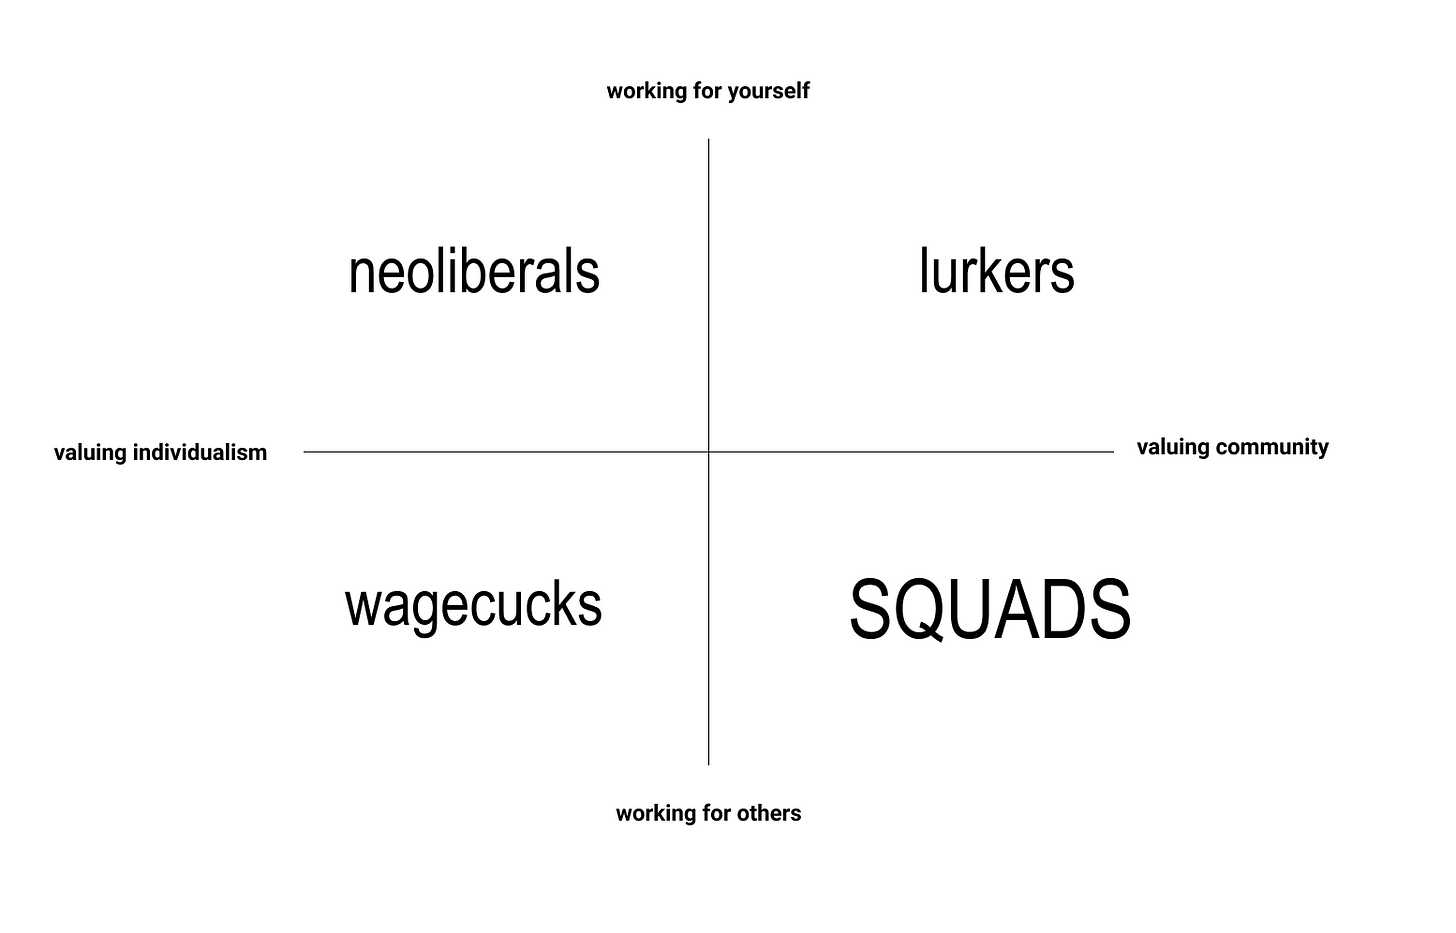 Squad collectivism is a better form of autonomy than neoliberal individualism